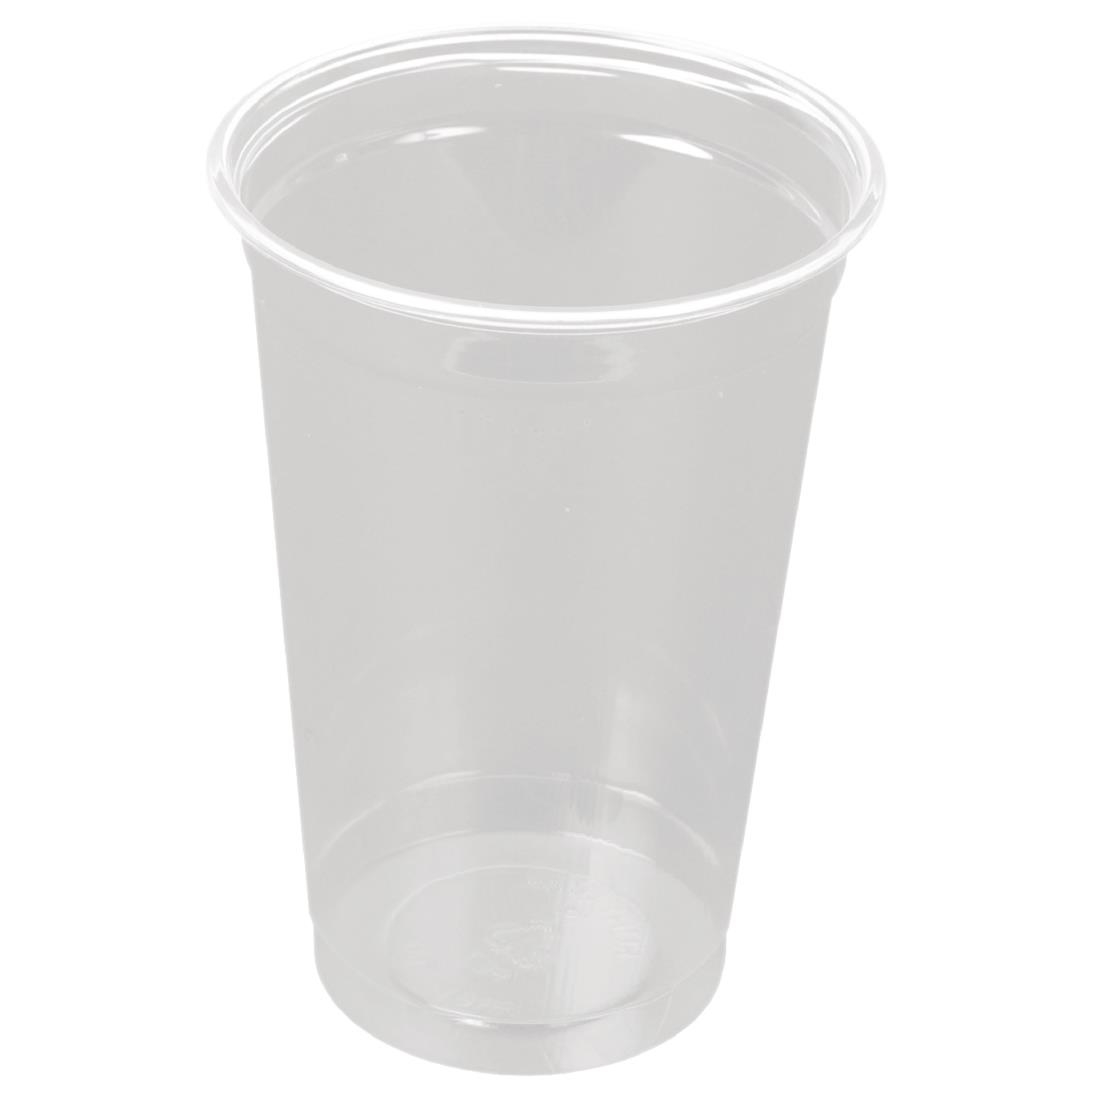 Image of Huhtamaki Disposable Half Pint to Line Tumbler (Pack of 1000) Pack of 1000